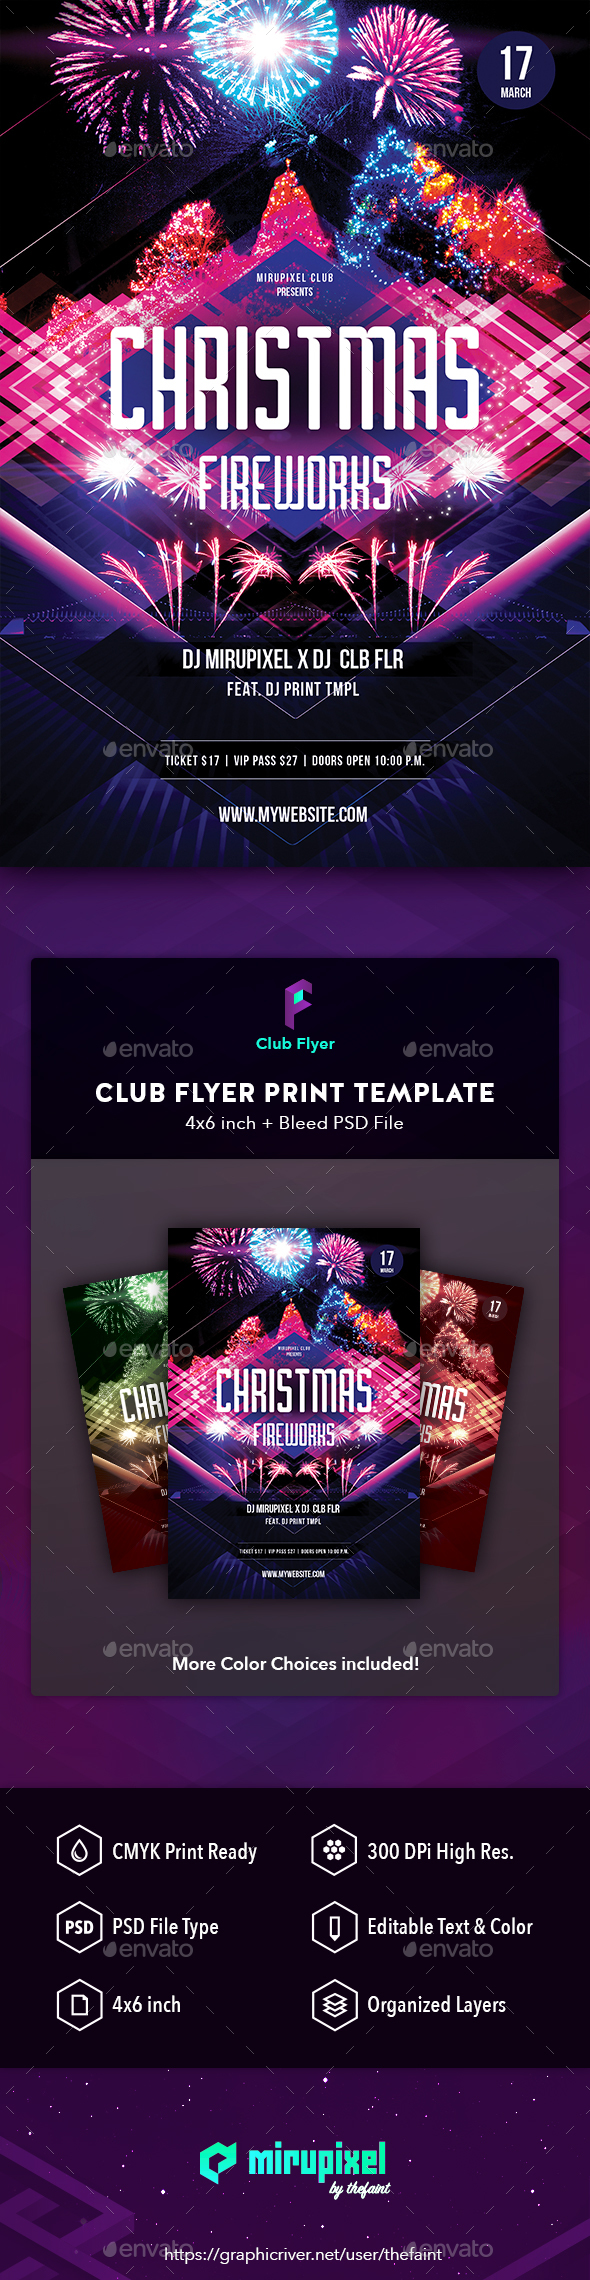 GraphicRiver Club Flyer Christmas Fireworks 21124859